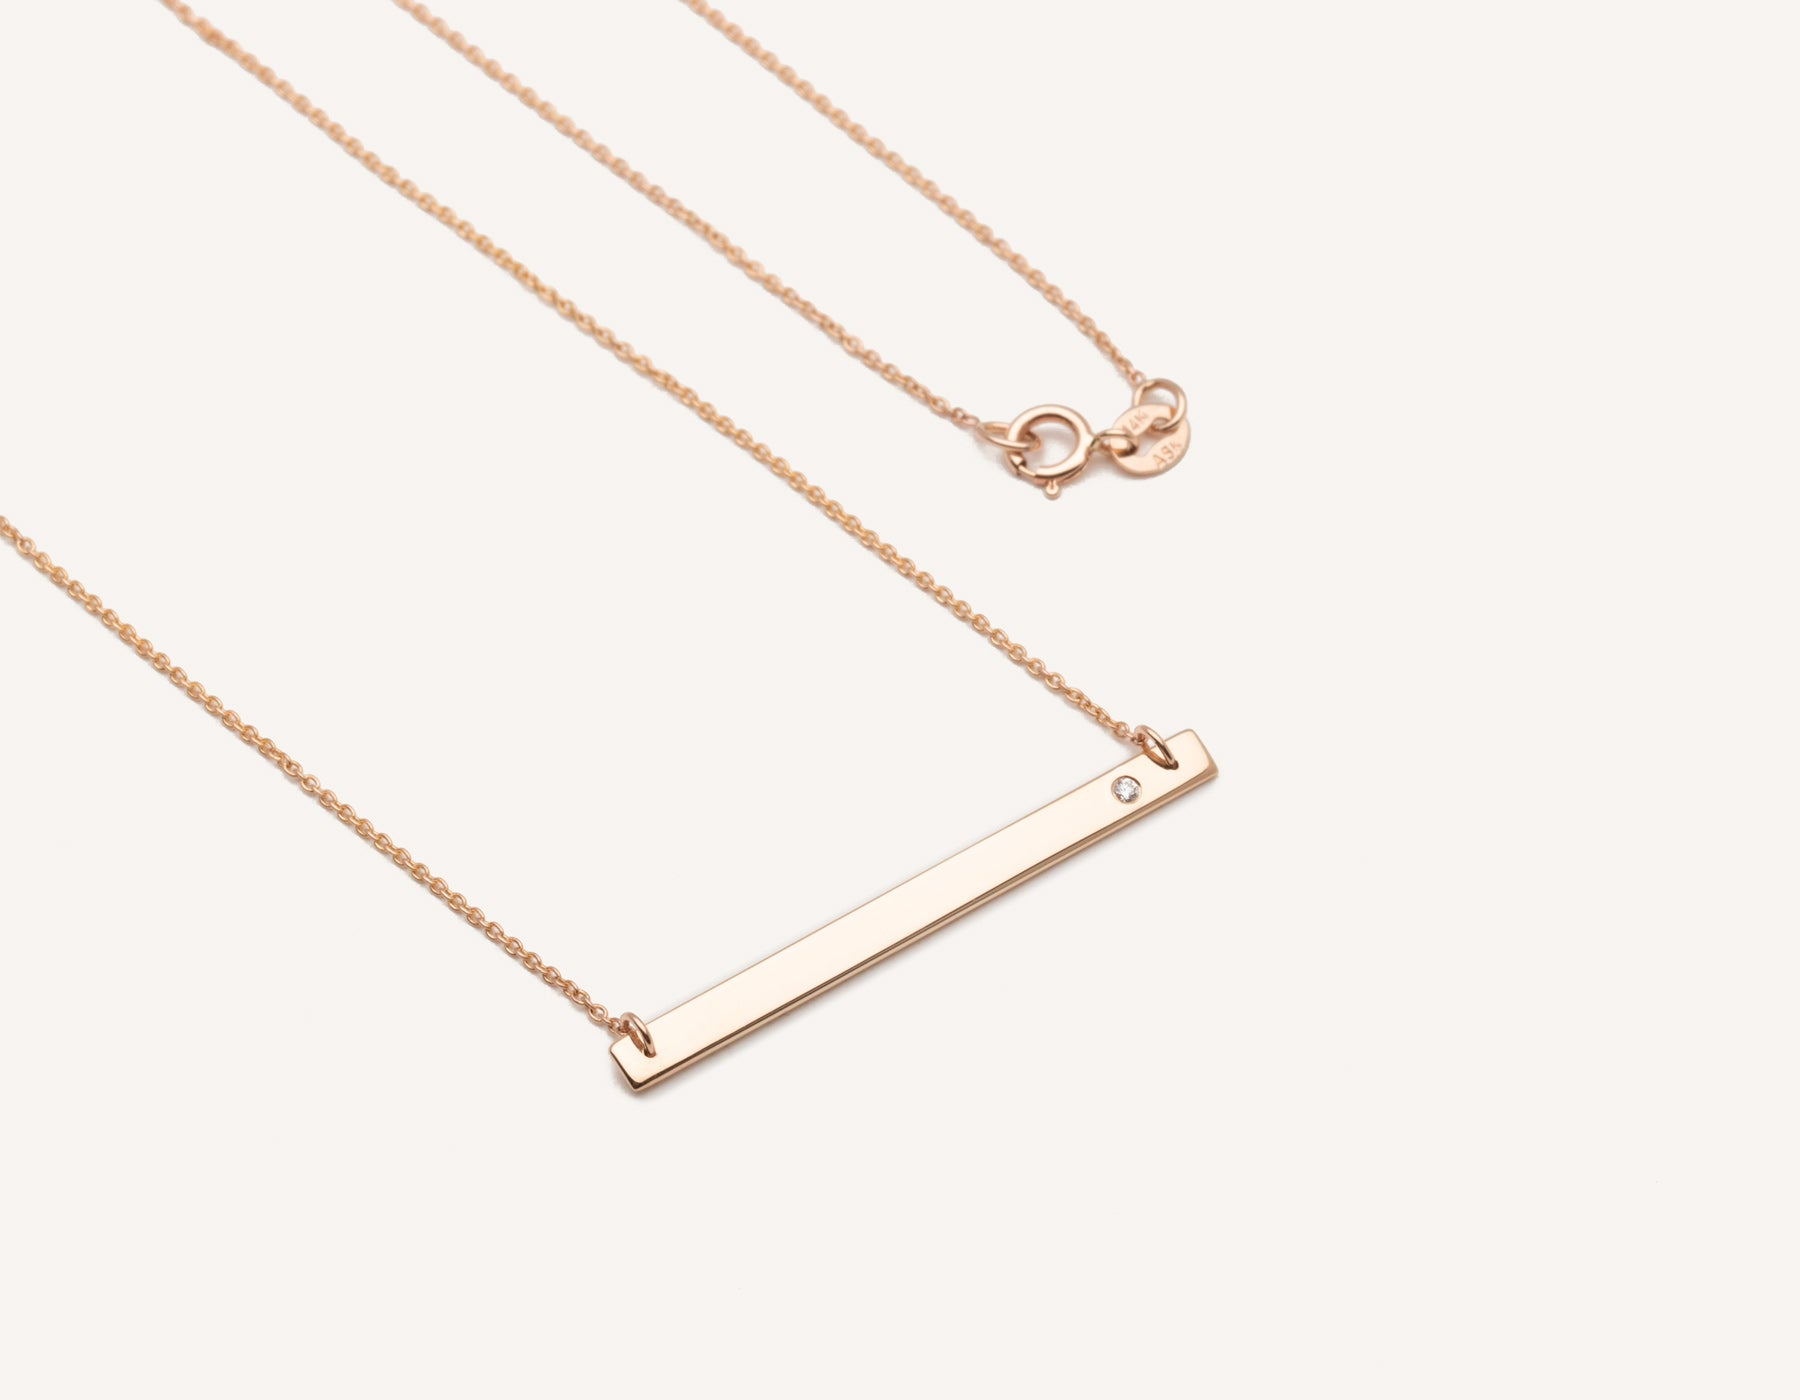 Simple personalized engraving 14k solid gold Bar Necklace with Diamond on minimalist chain by Vrai & Oro sustainable jewelry, 14K Rose Gold